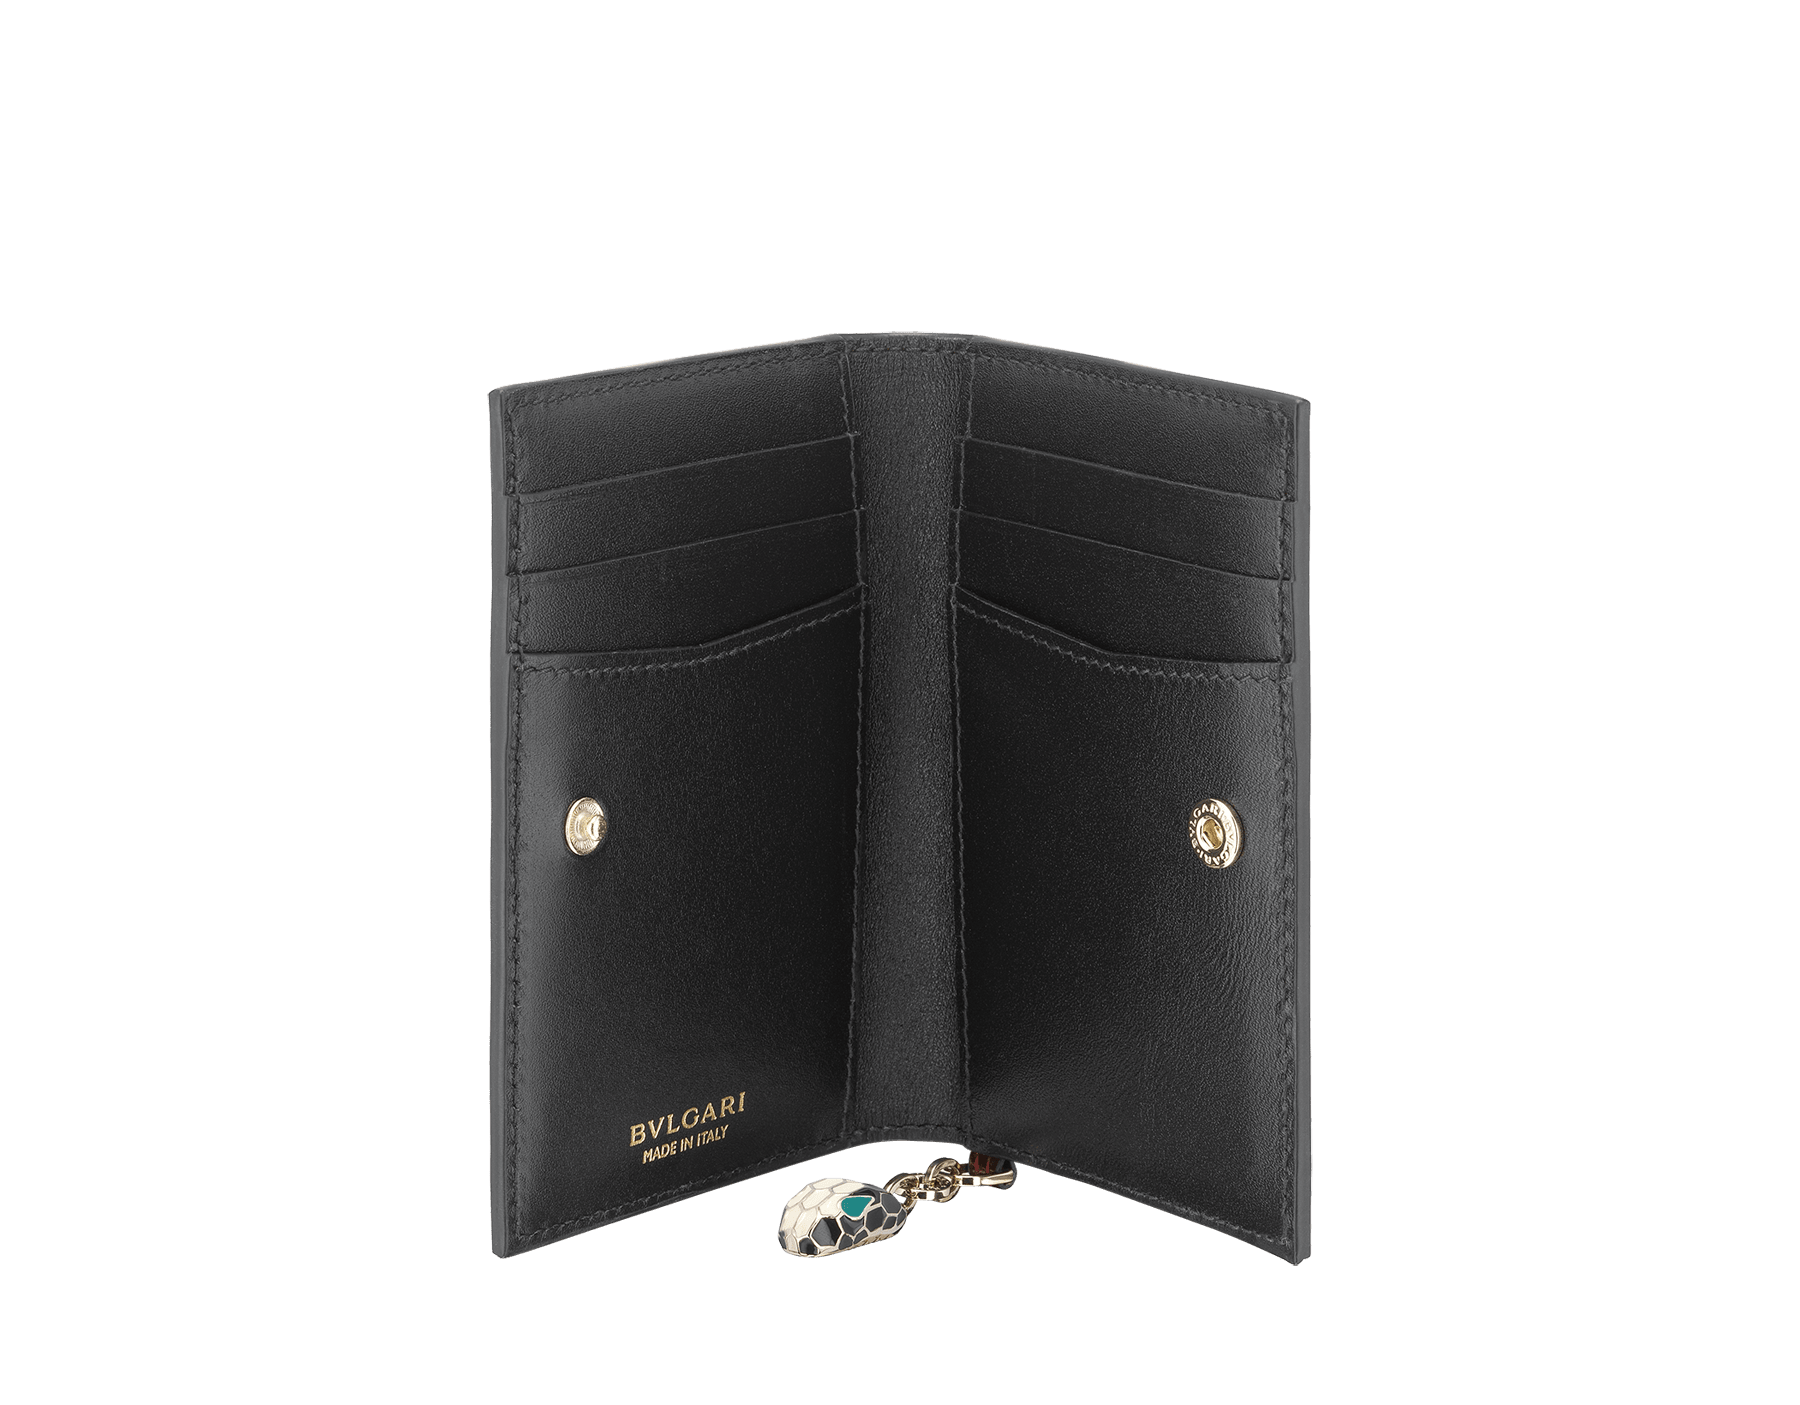 Folded credit card holder in forest emerald brushed metallic calf leather and black calf leather, with brass light gold plated hardware and stud closure. Serpenti head charm in black and white enamel with green enamel eyes. SEA-CC-HOLDER-FOLD-BMCLb image 2